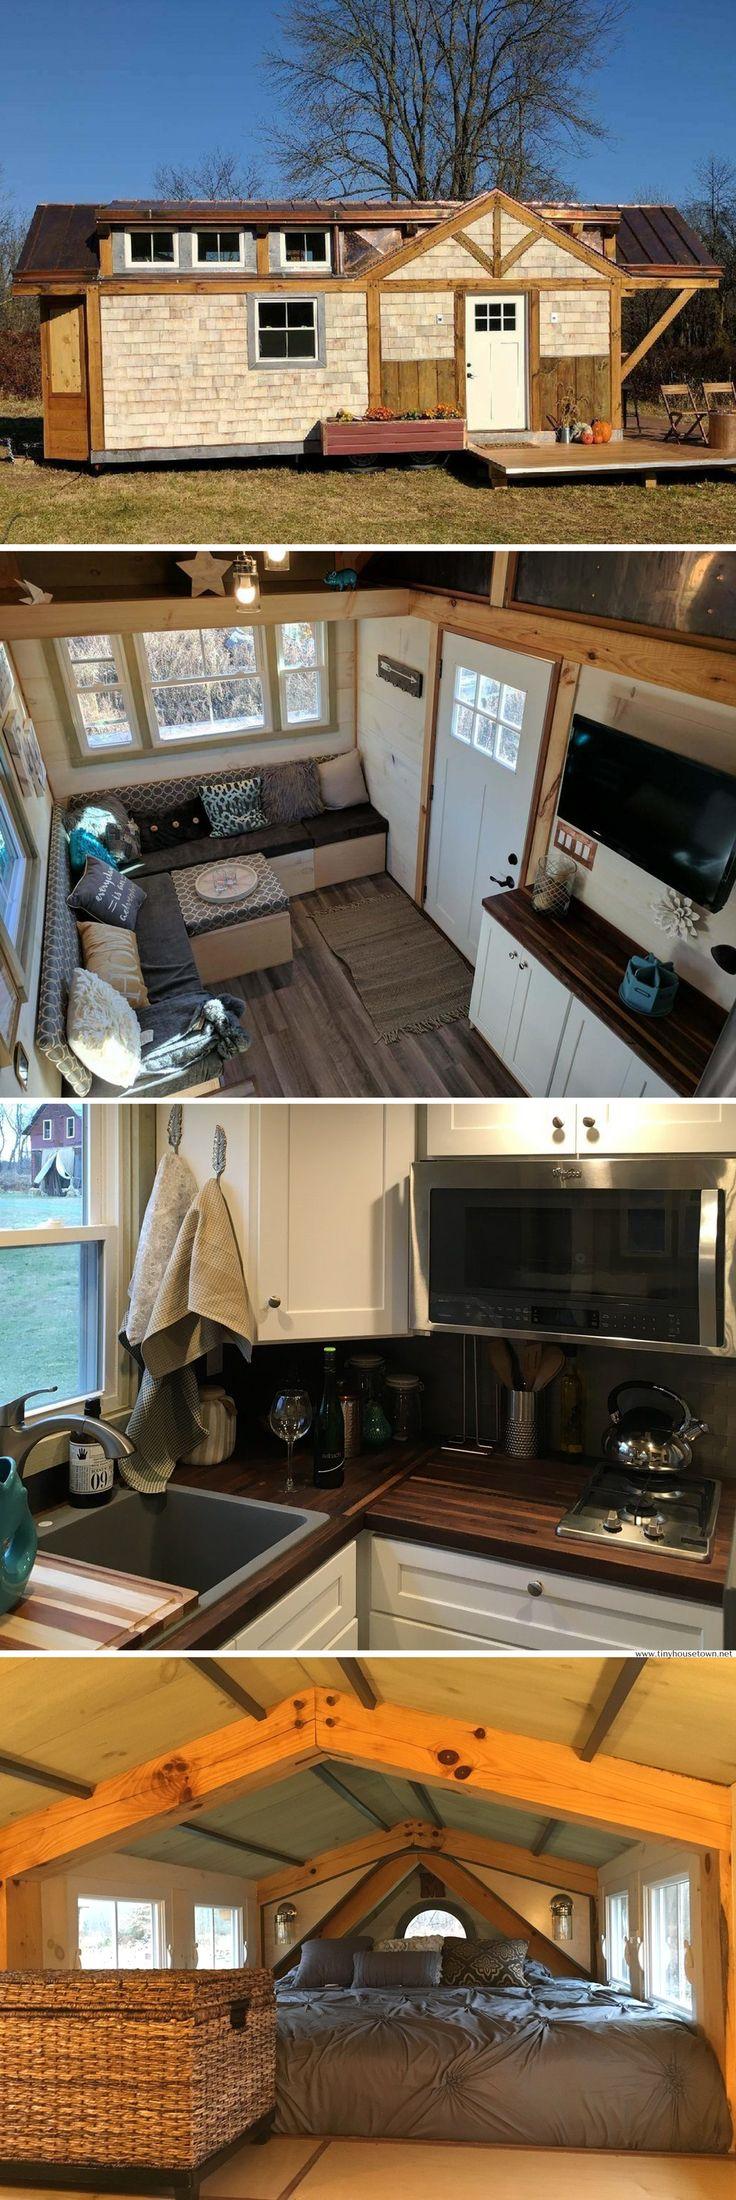 A luxury 320 sq ft tiny house available for sale in Hopewell, NJ